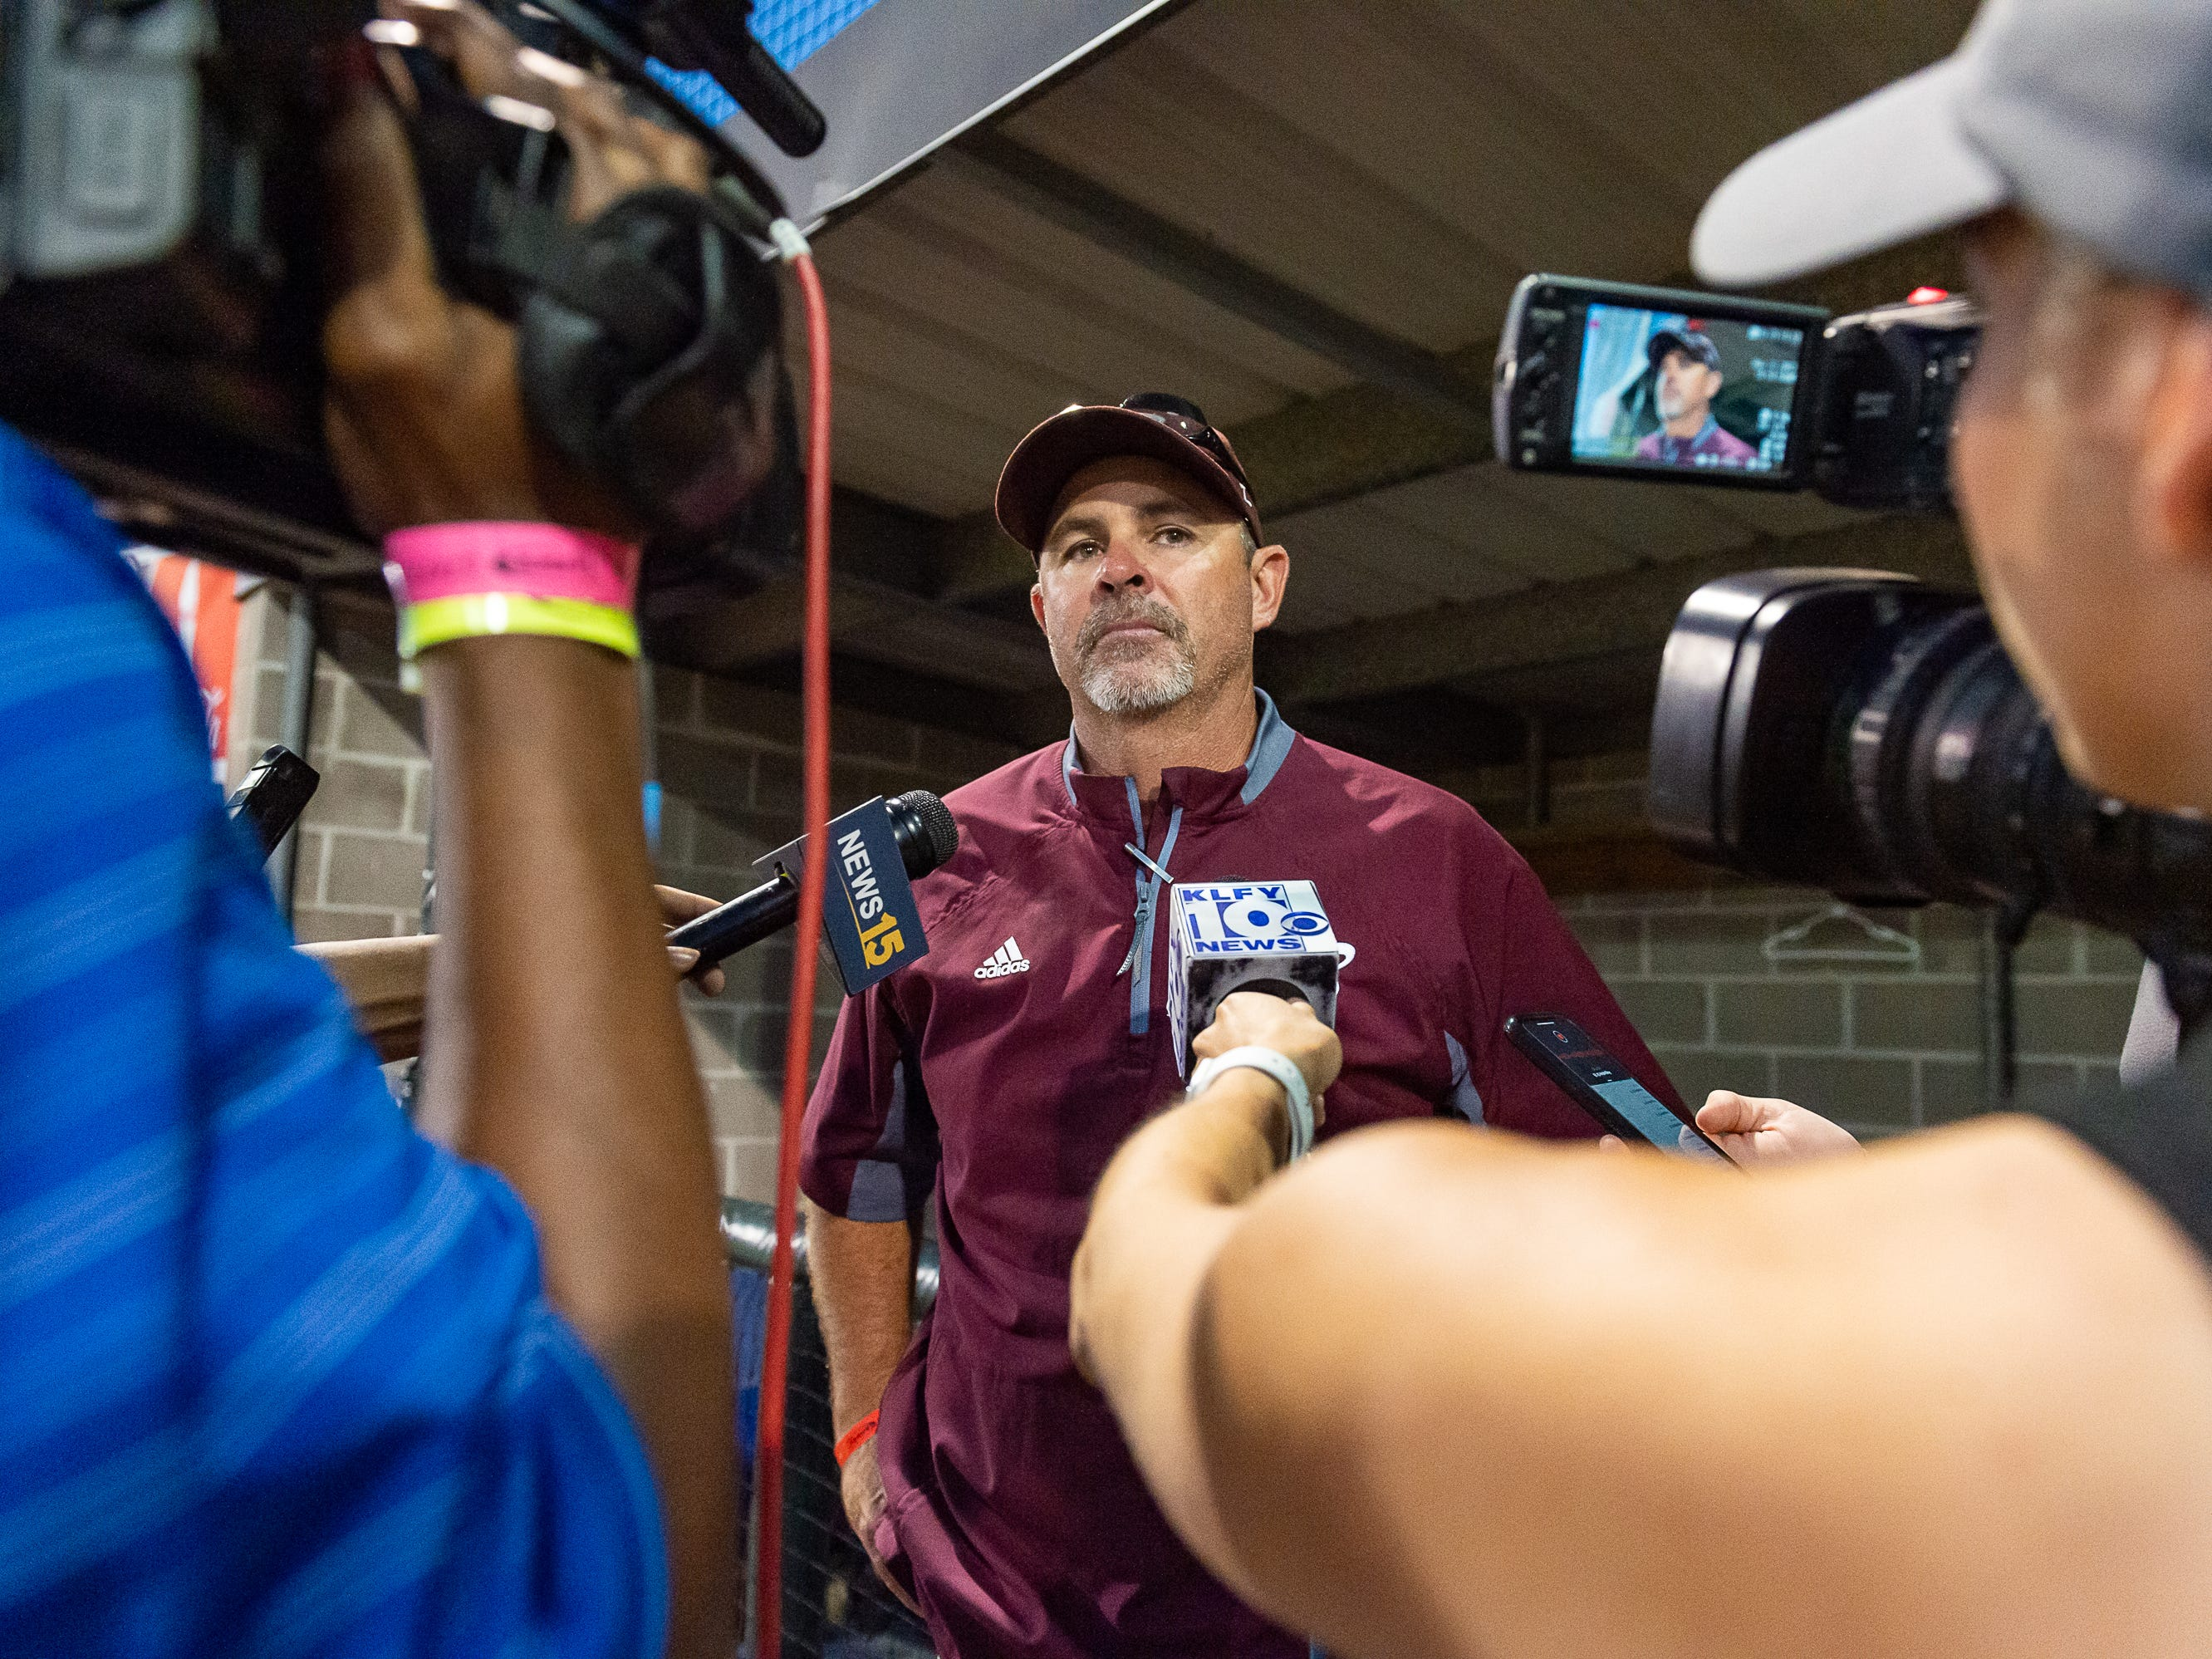 Herad Coach Kyle Cormier talks with media as Breaux Bridge falls to Tioga High School in the LHSAA Class 4A Championship Game. Tuesday, May 14, 2019.